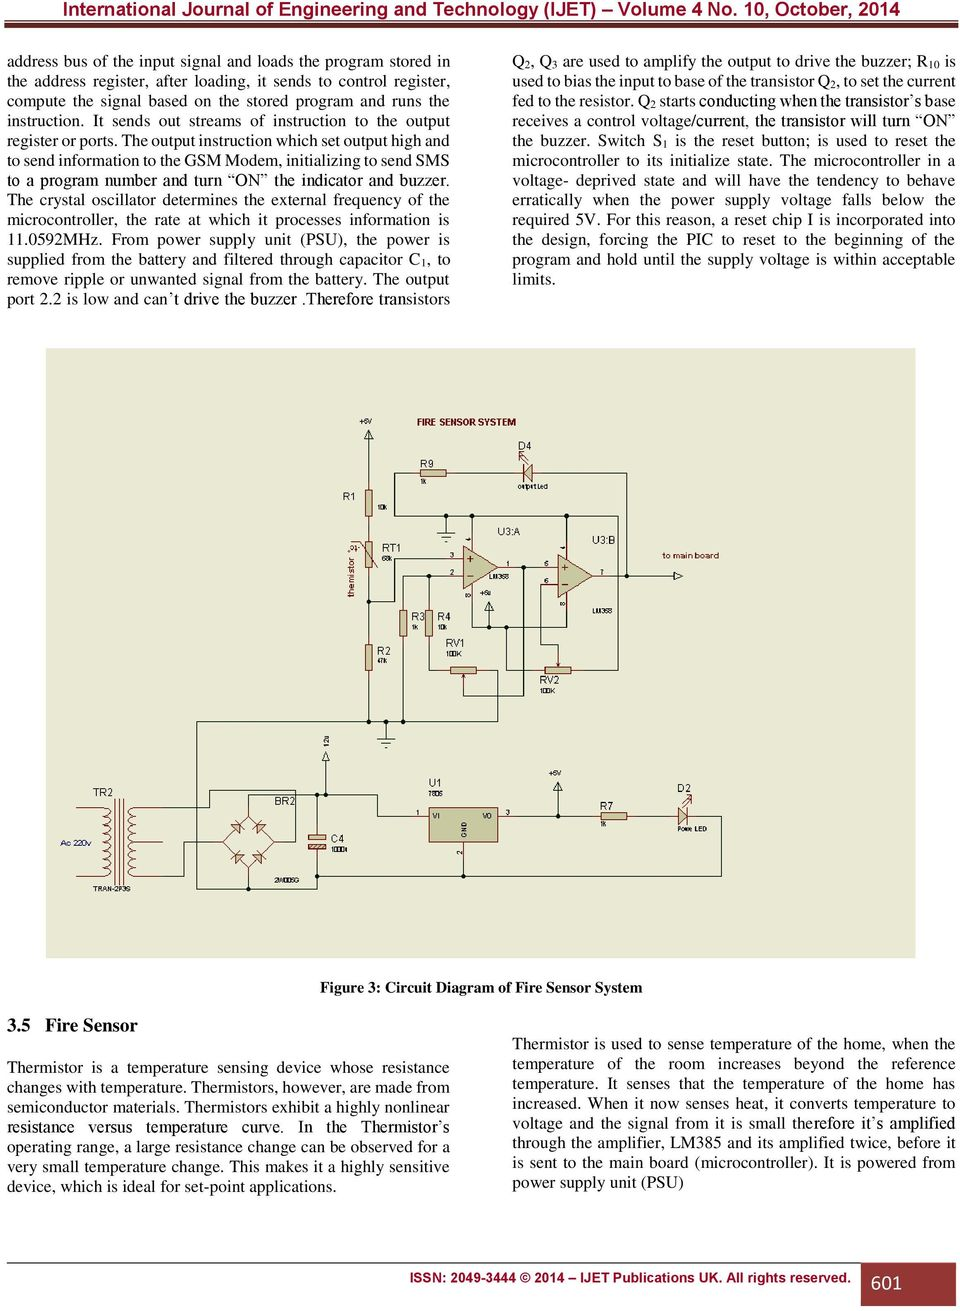 Pin Beyond The Buzzer Effect Images To Pinterest Circuit Diagram On